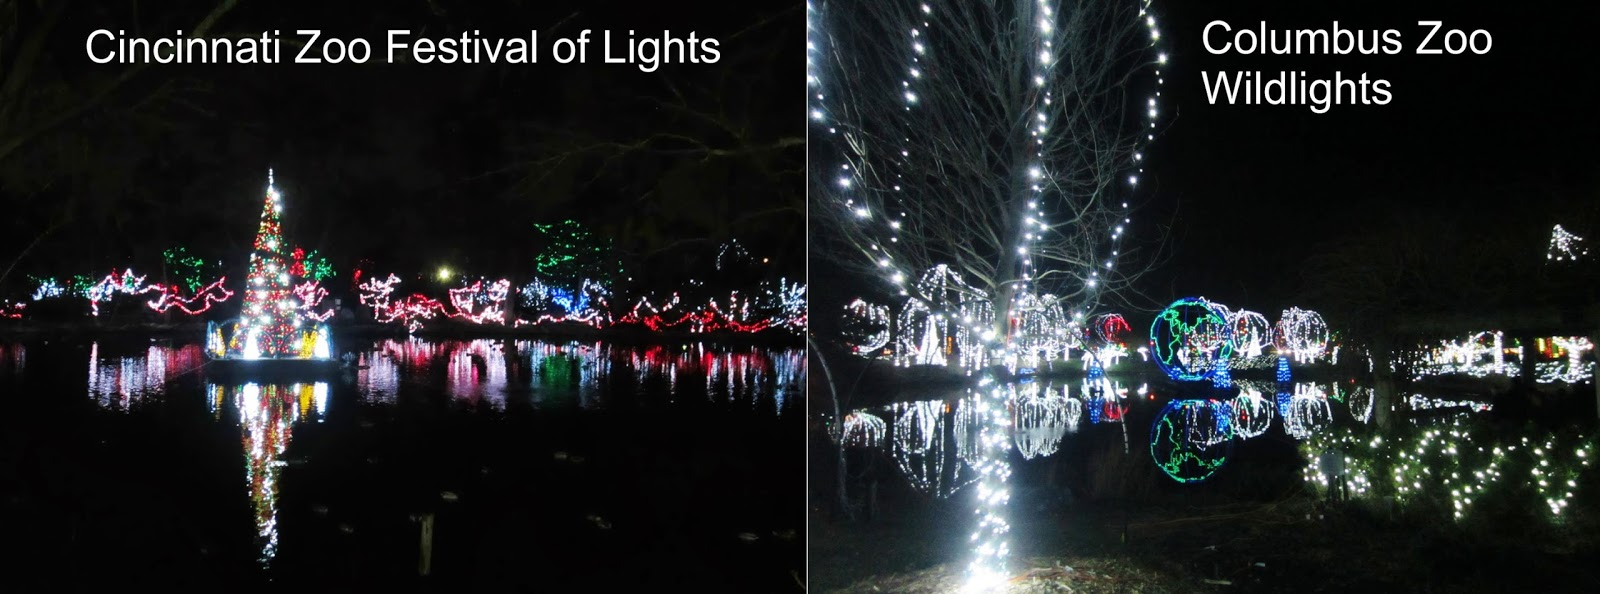 this is a comparison between the cincinnati zoos festival of lights and the columbus zoos wildlights when christmas time came around dayton ohio